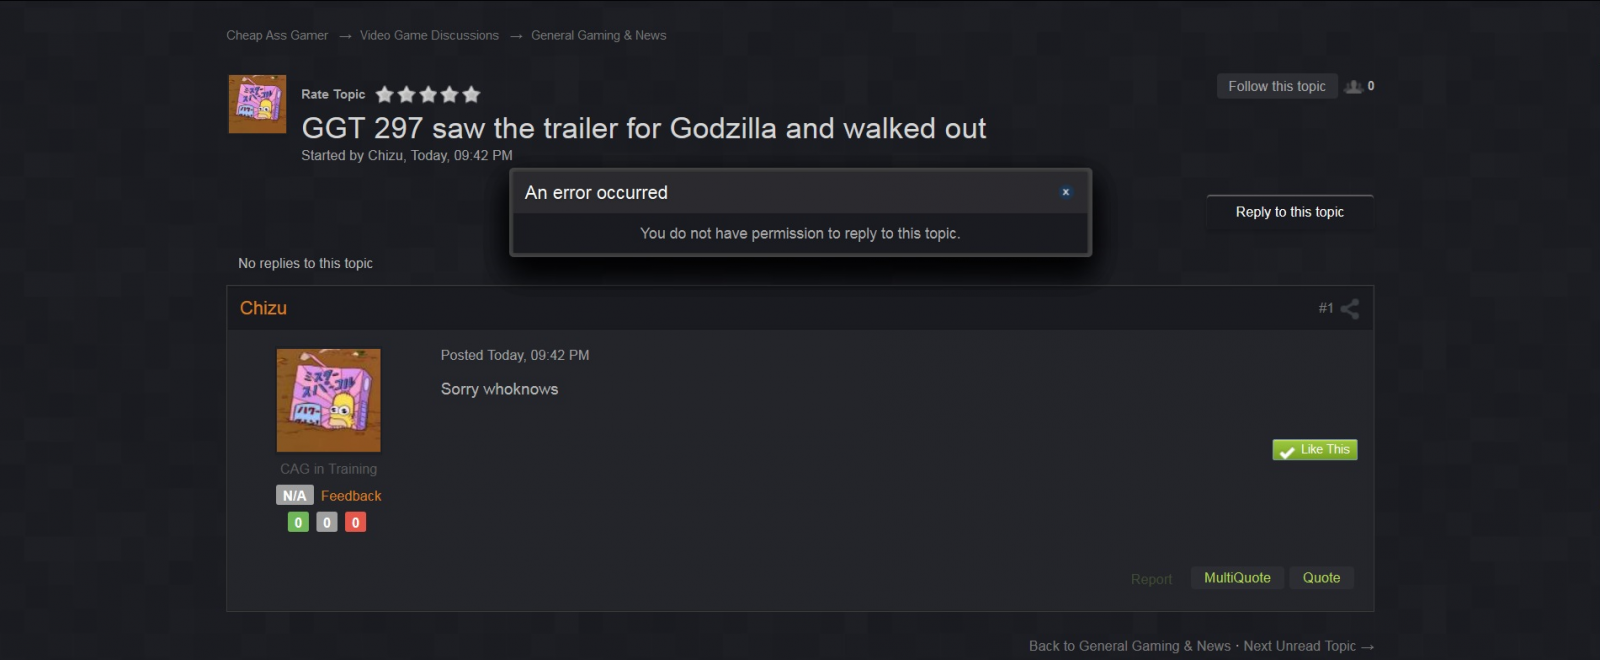 GGT 297 Saw The trailer For Godzilla And walked Out